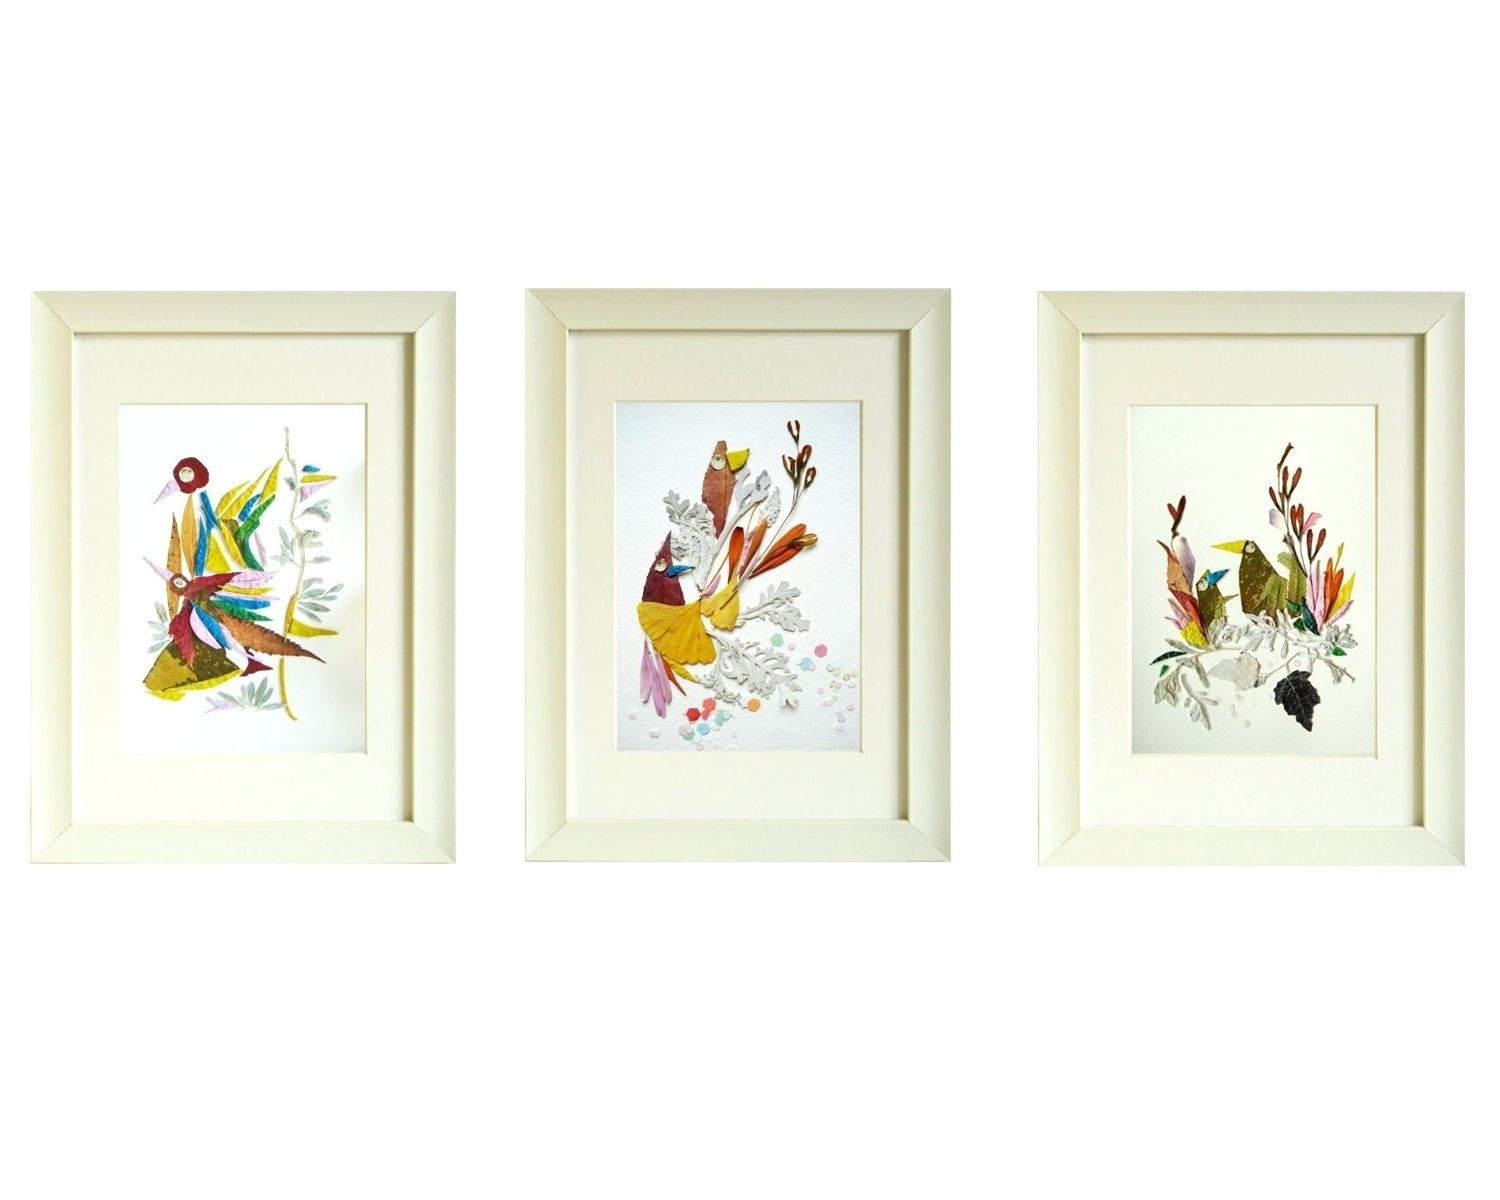 Fashionable Wall Art Sets Of 3 With Regard To Wall Arts ~ Forest Wall Art Set Of 3 3 Piece Wall Decor Set Wall (View 6 of 15)